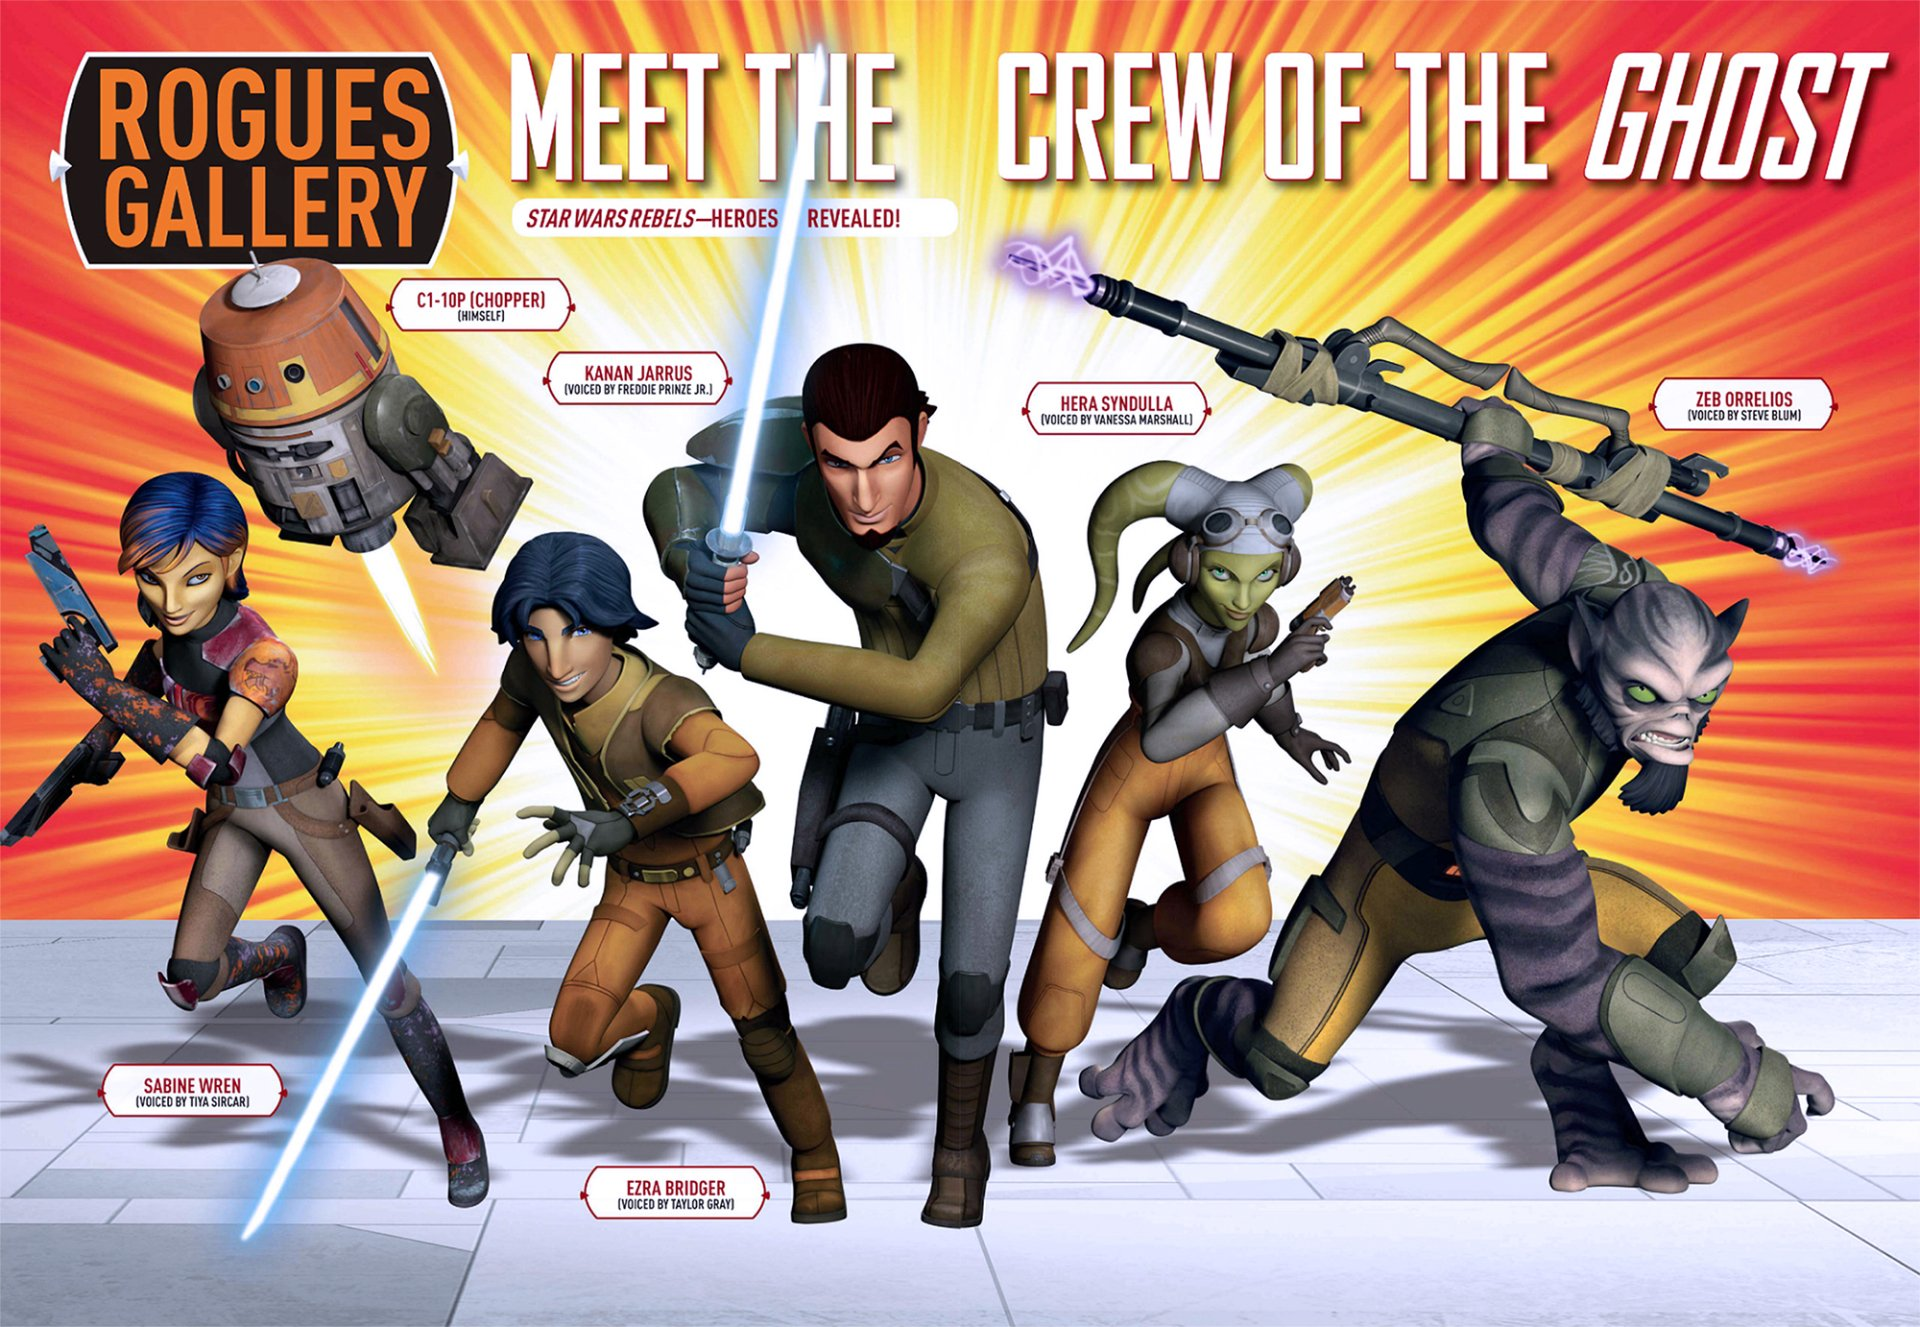 TV Show - Star Wars Rebels  C1-10P(Chopper) Kanan Jarrus Hera Syndulla Zeb Orrelios Sabine Wren Ezra Bridger Wallpaper